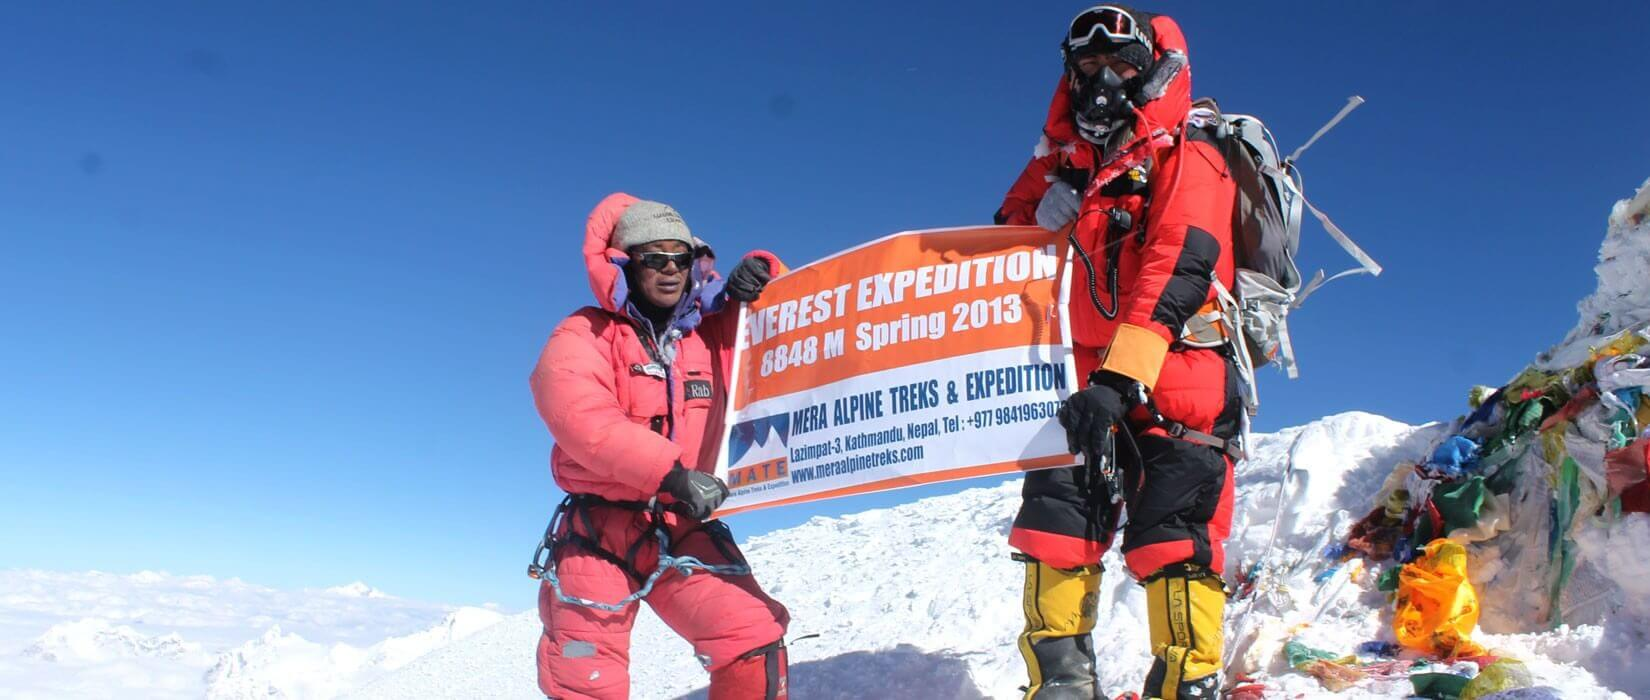 Top of the World Mount Everest